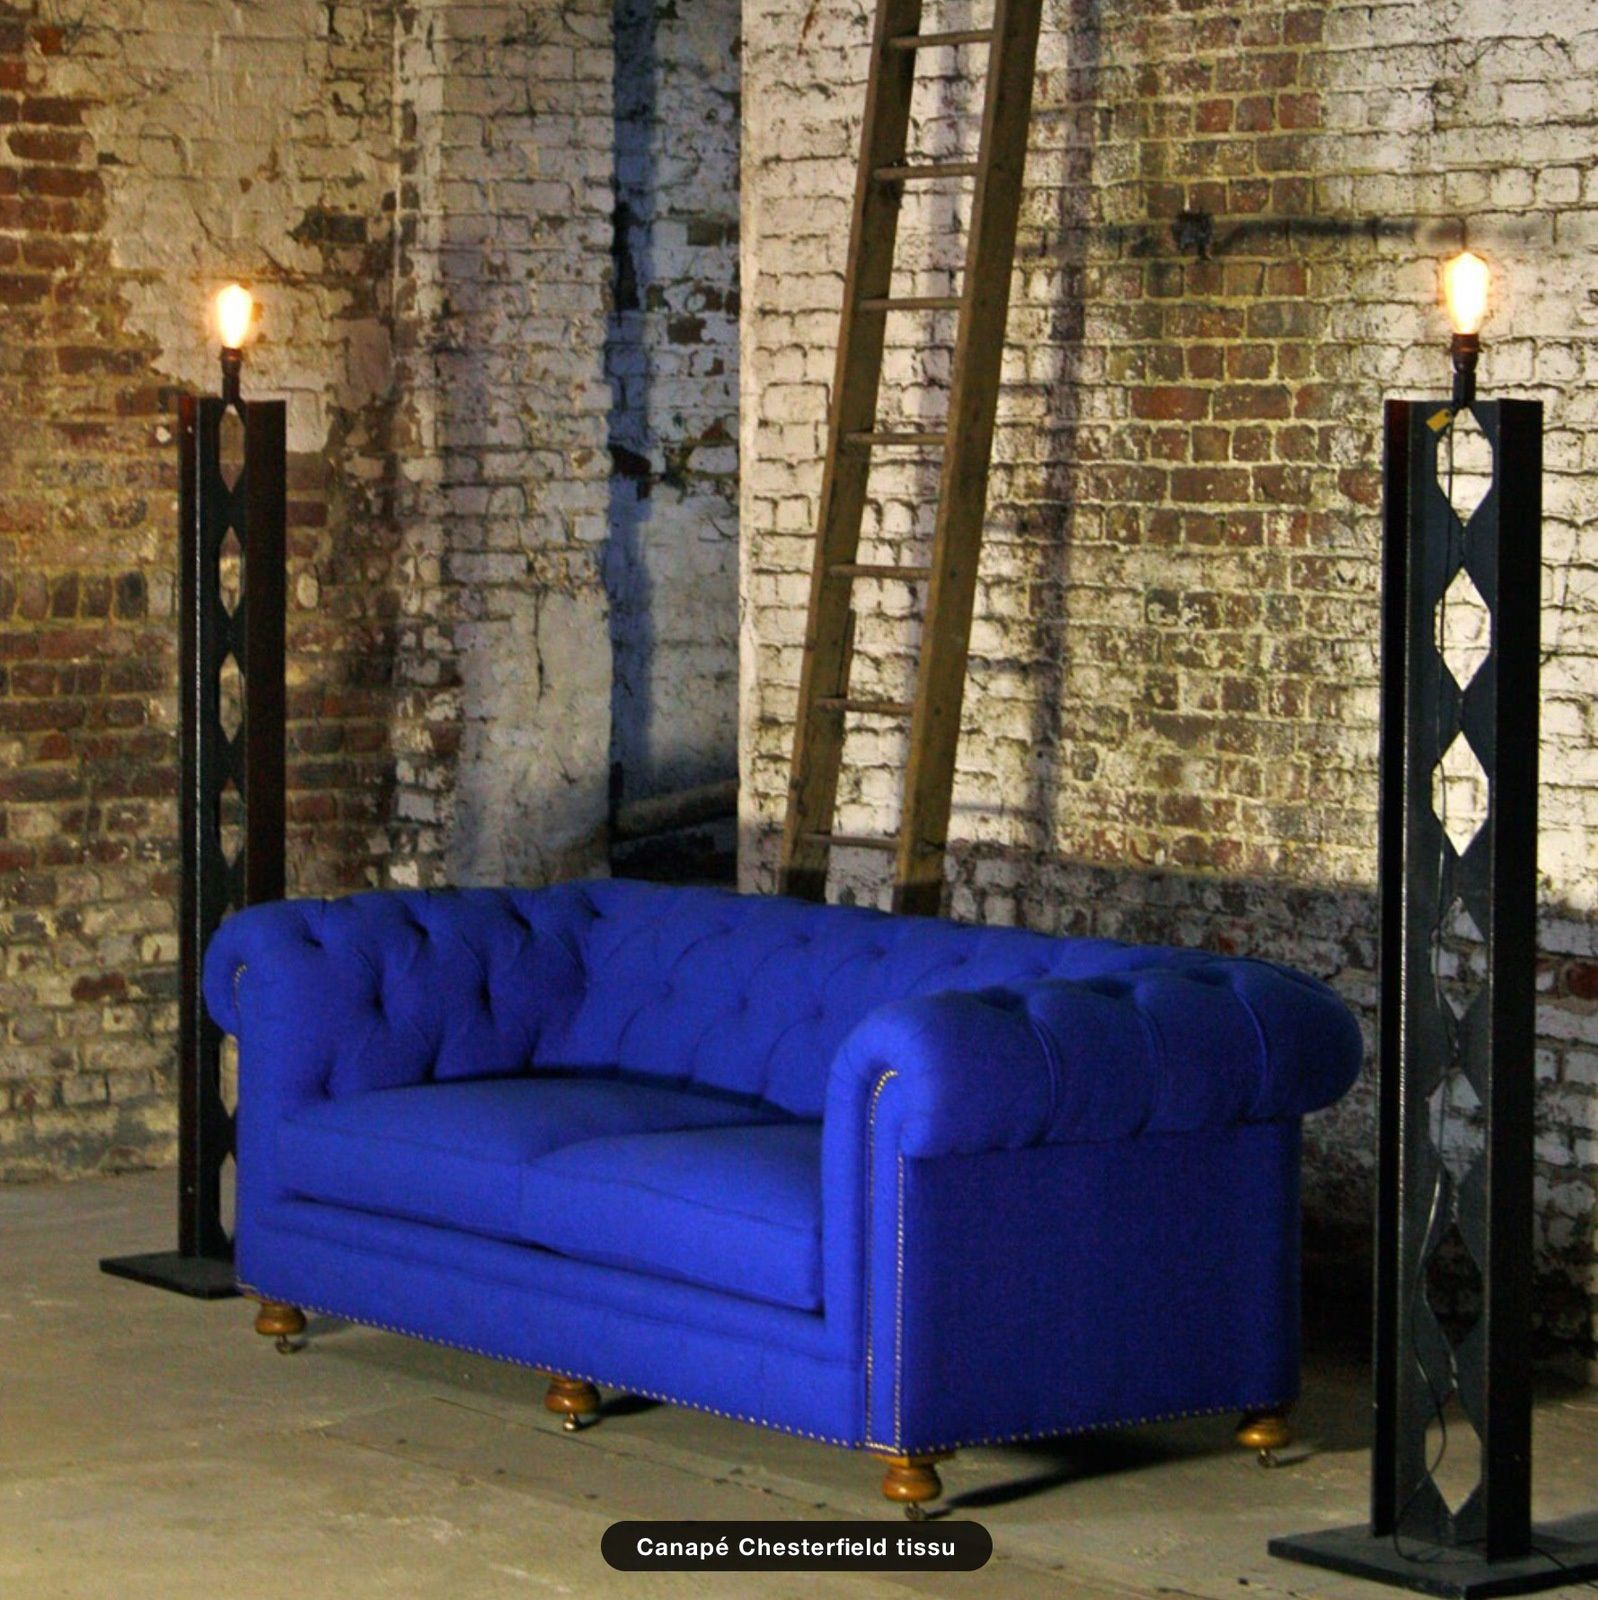 canap chesterfield tissu. Black Bedroom Furniture Sets. Home Design Ideas